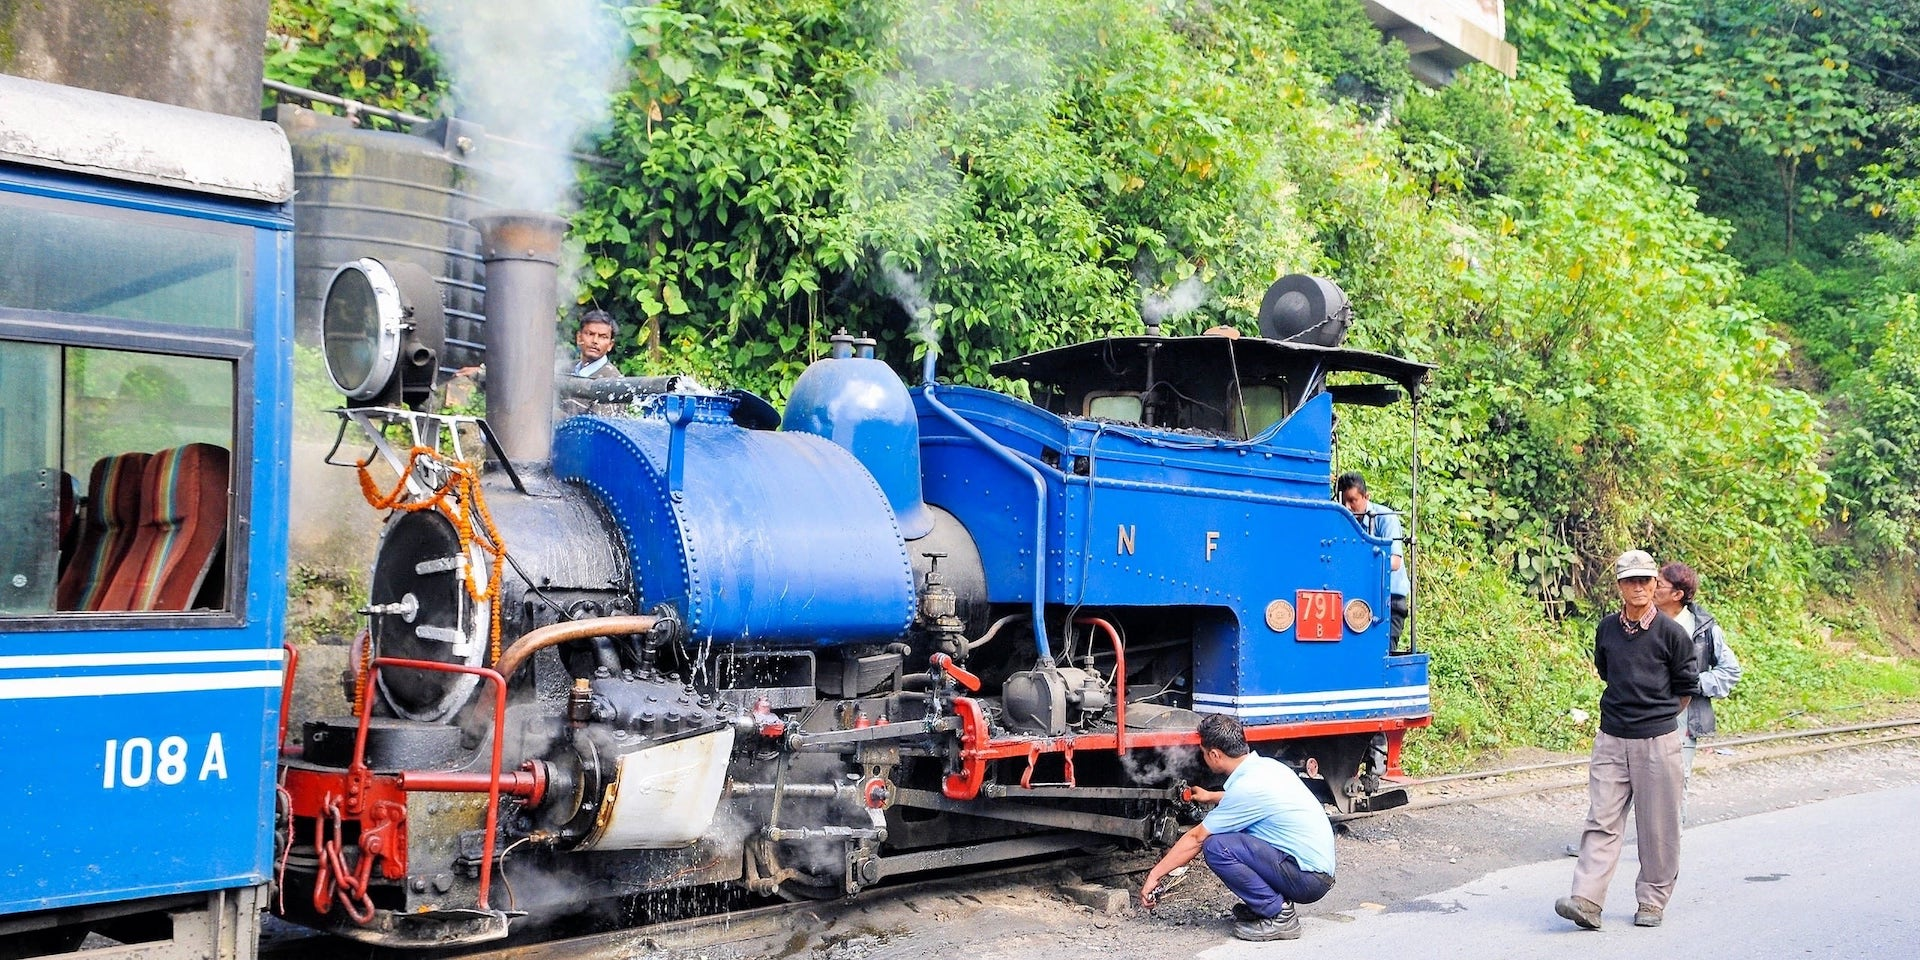 Darjeeling Toy Train maintenance